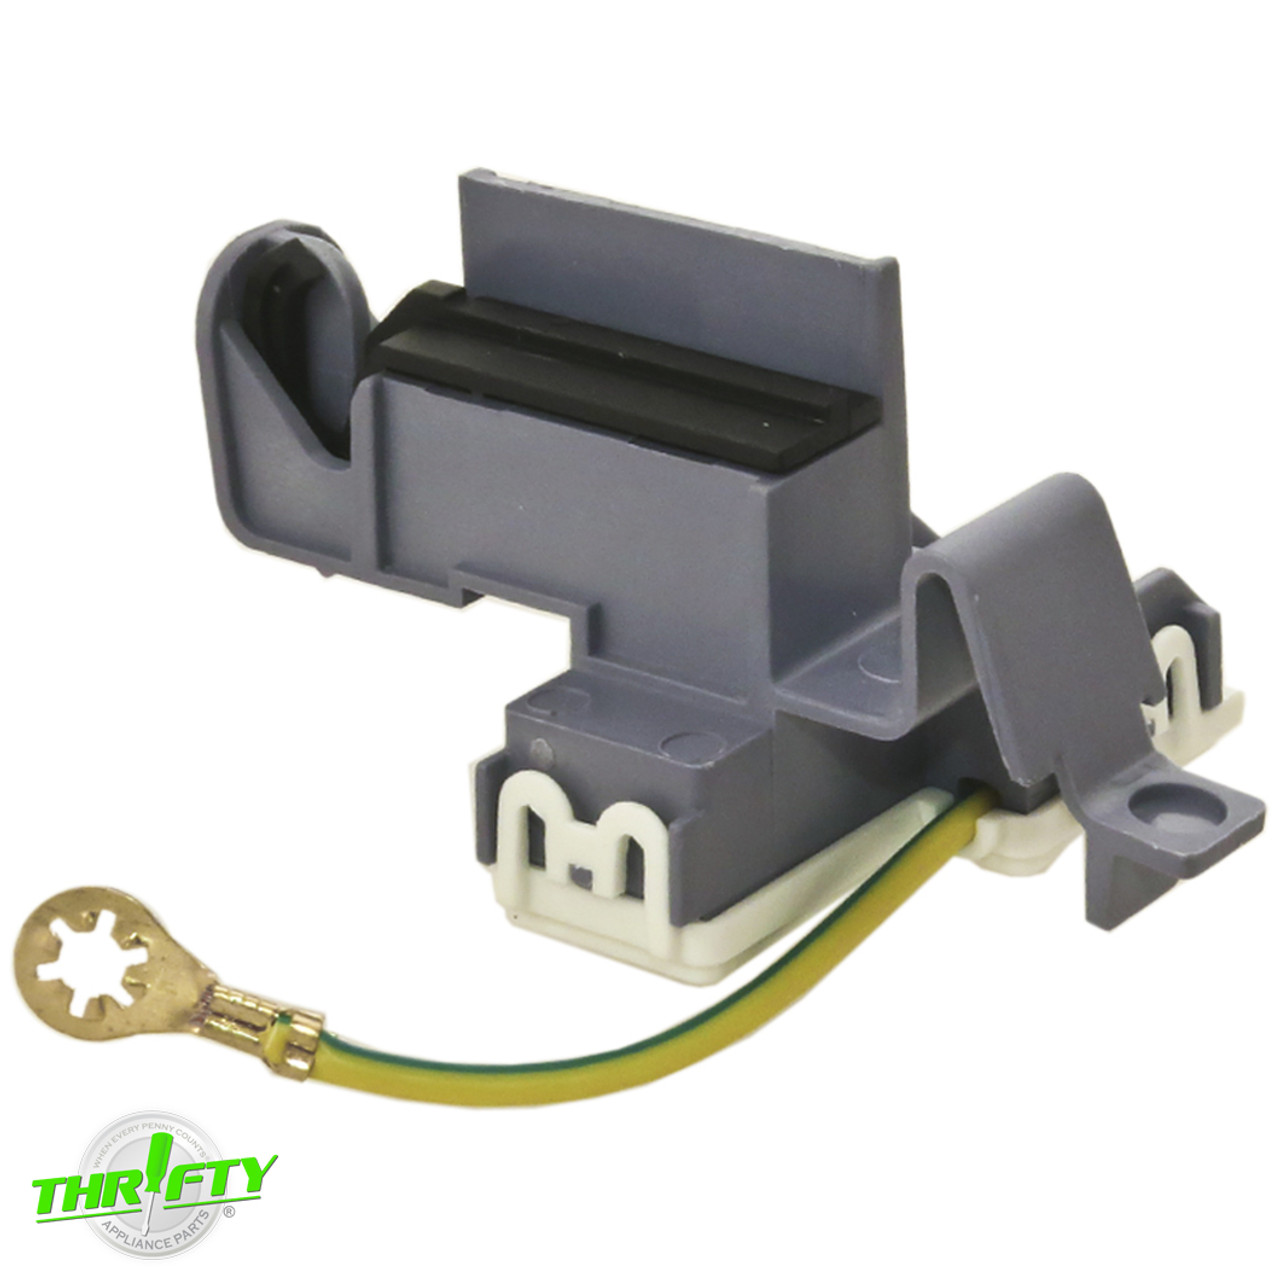 hight resolution of 8318084 whirlpool lid switch replacement thrifty appliance parts diagram parts list for model atw4475vq0 admiralparts washerparts